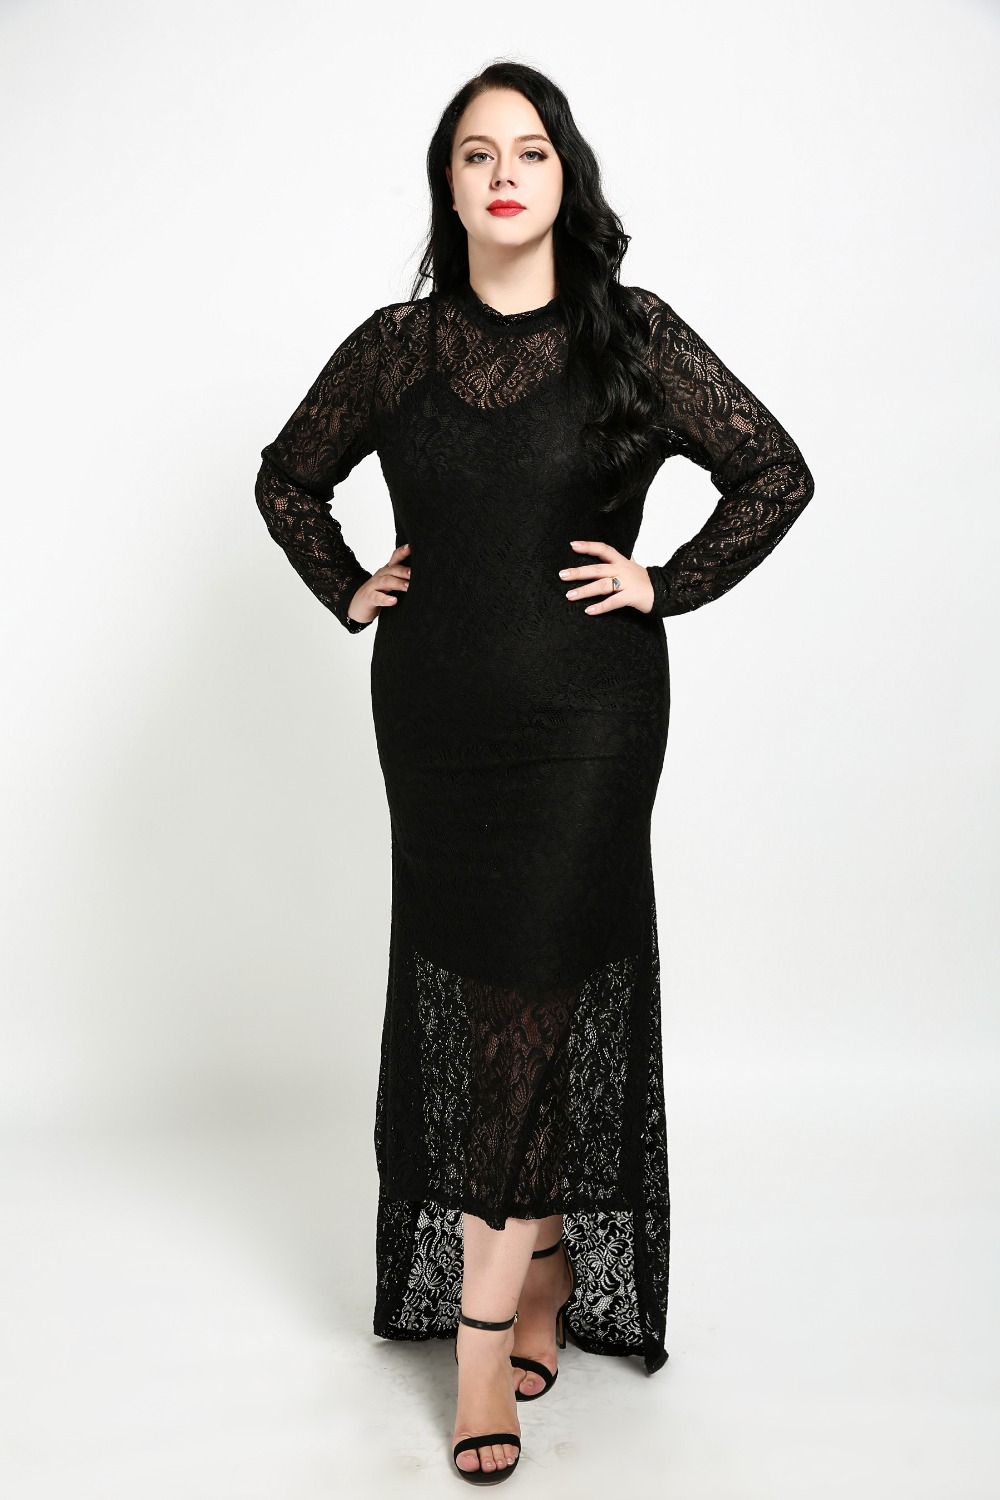 b08a7ad8891 Plus Size Lace Cocktail Dresses With Sleeves - Data Dynamic AG